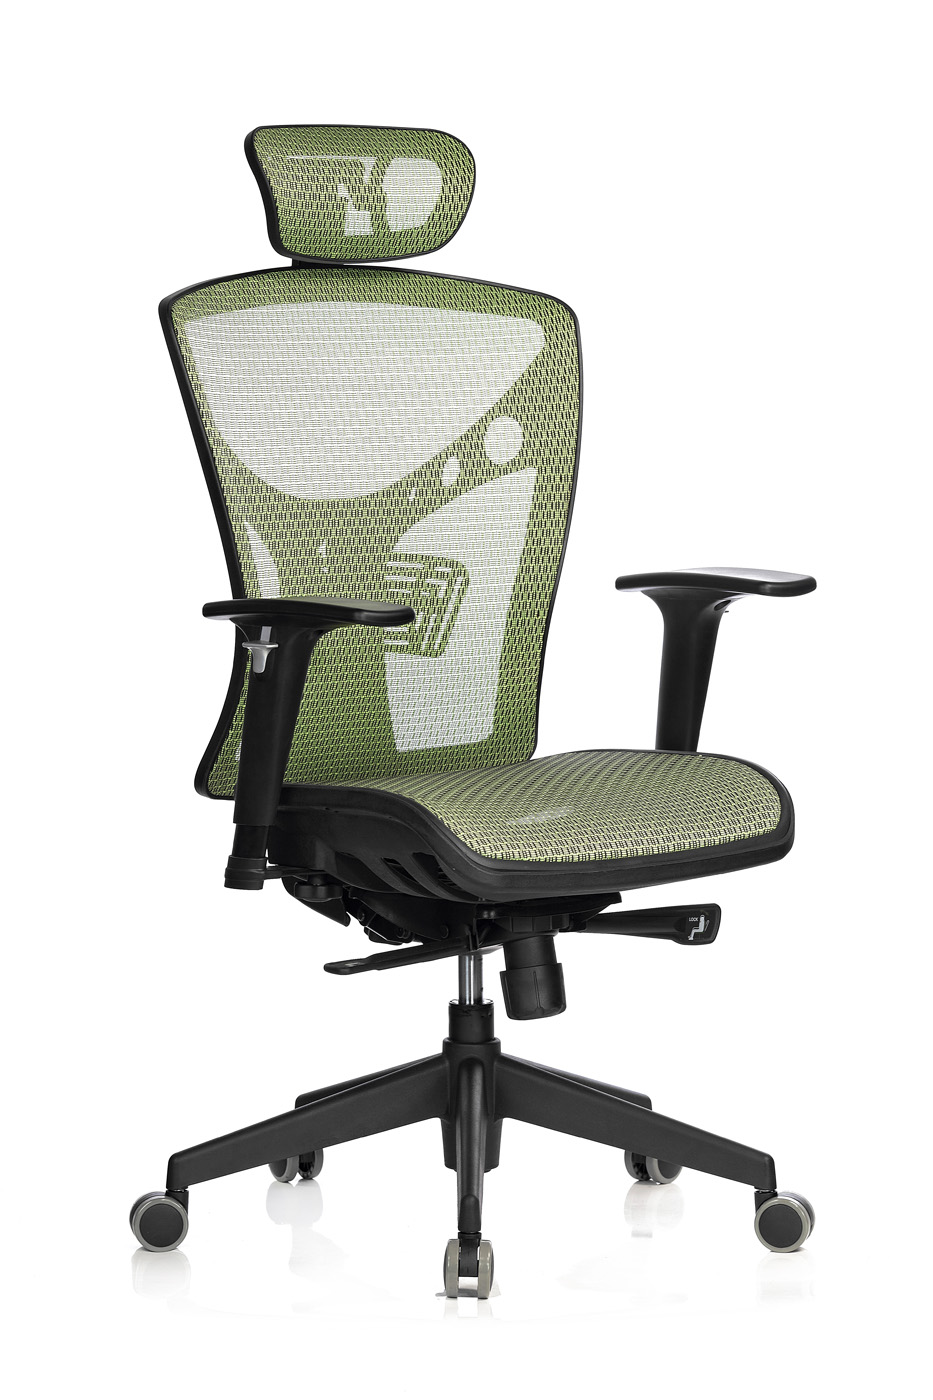 Y-40HP office chair